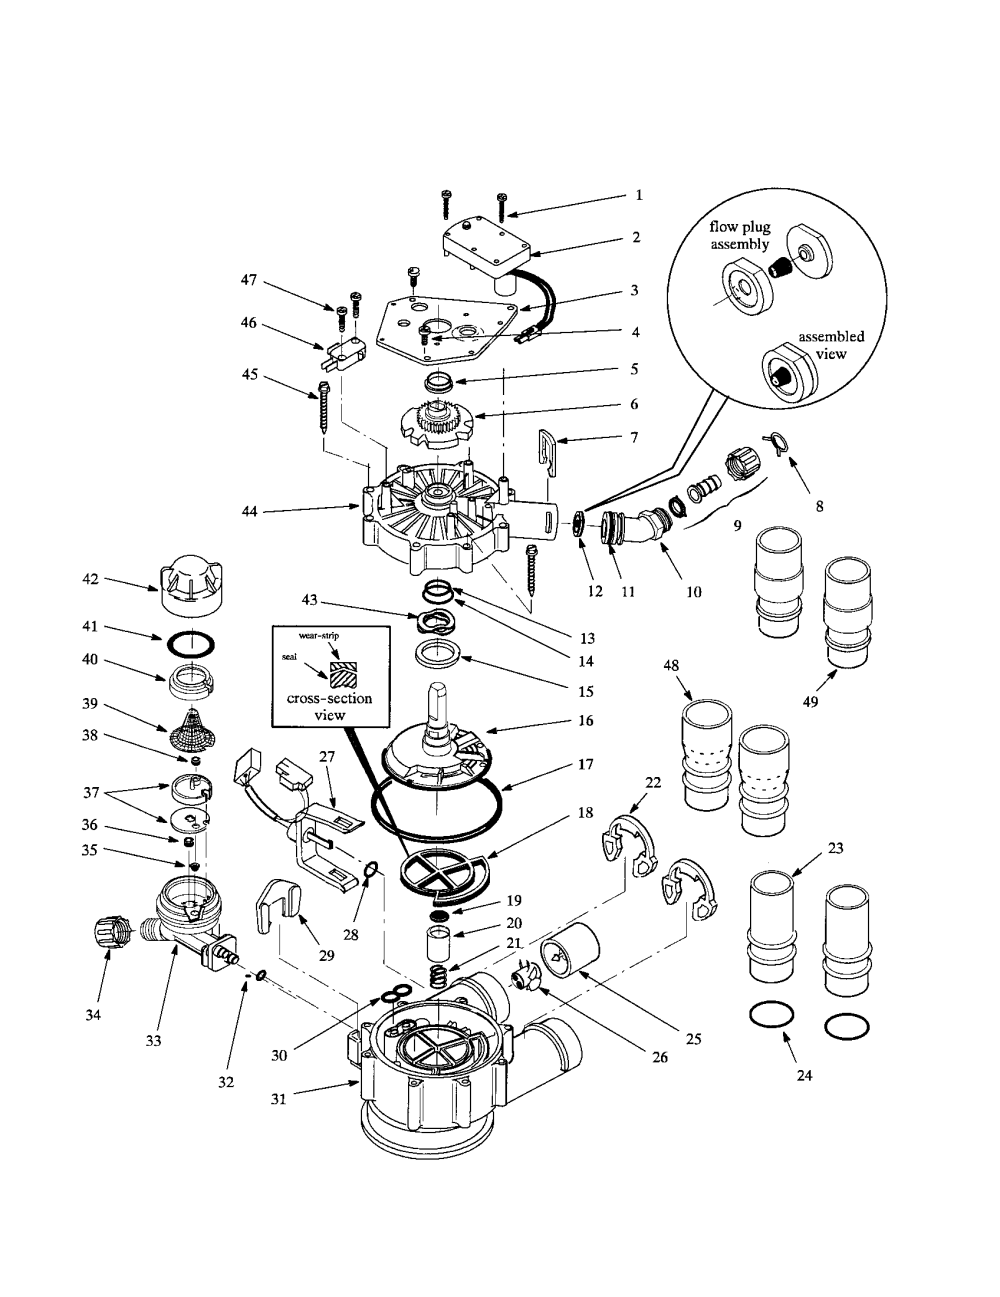 medium resolution of whirlpool whes40 motor tubing valve cover diagram